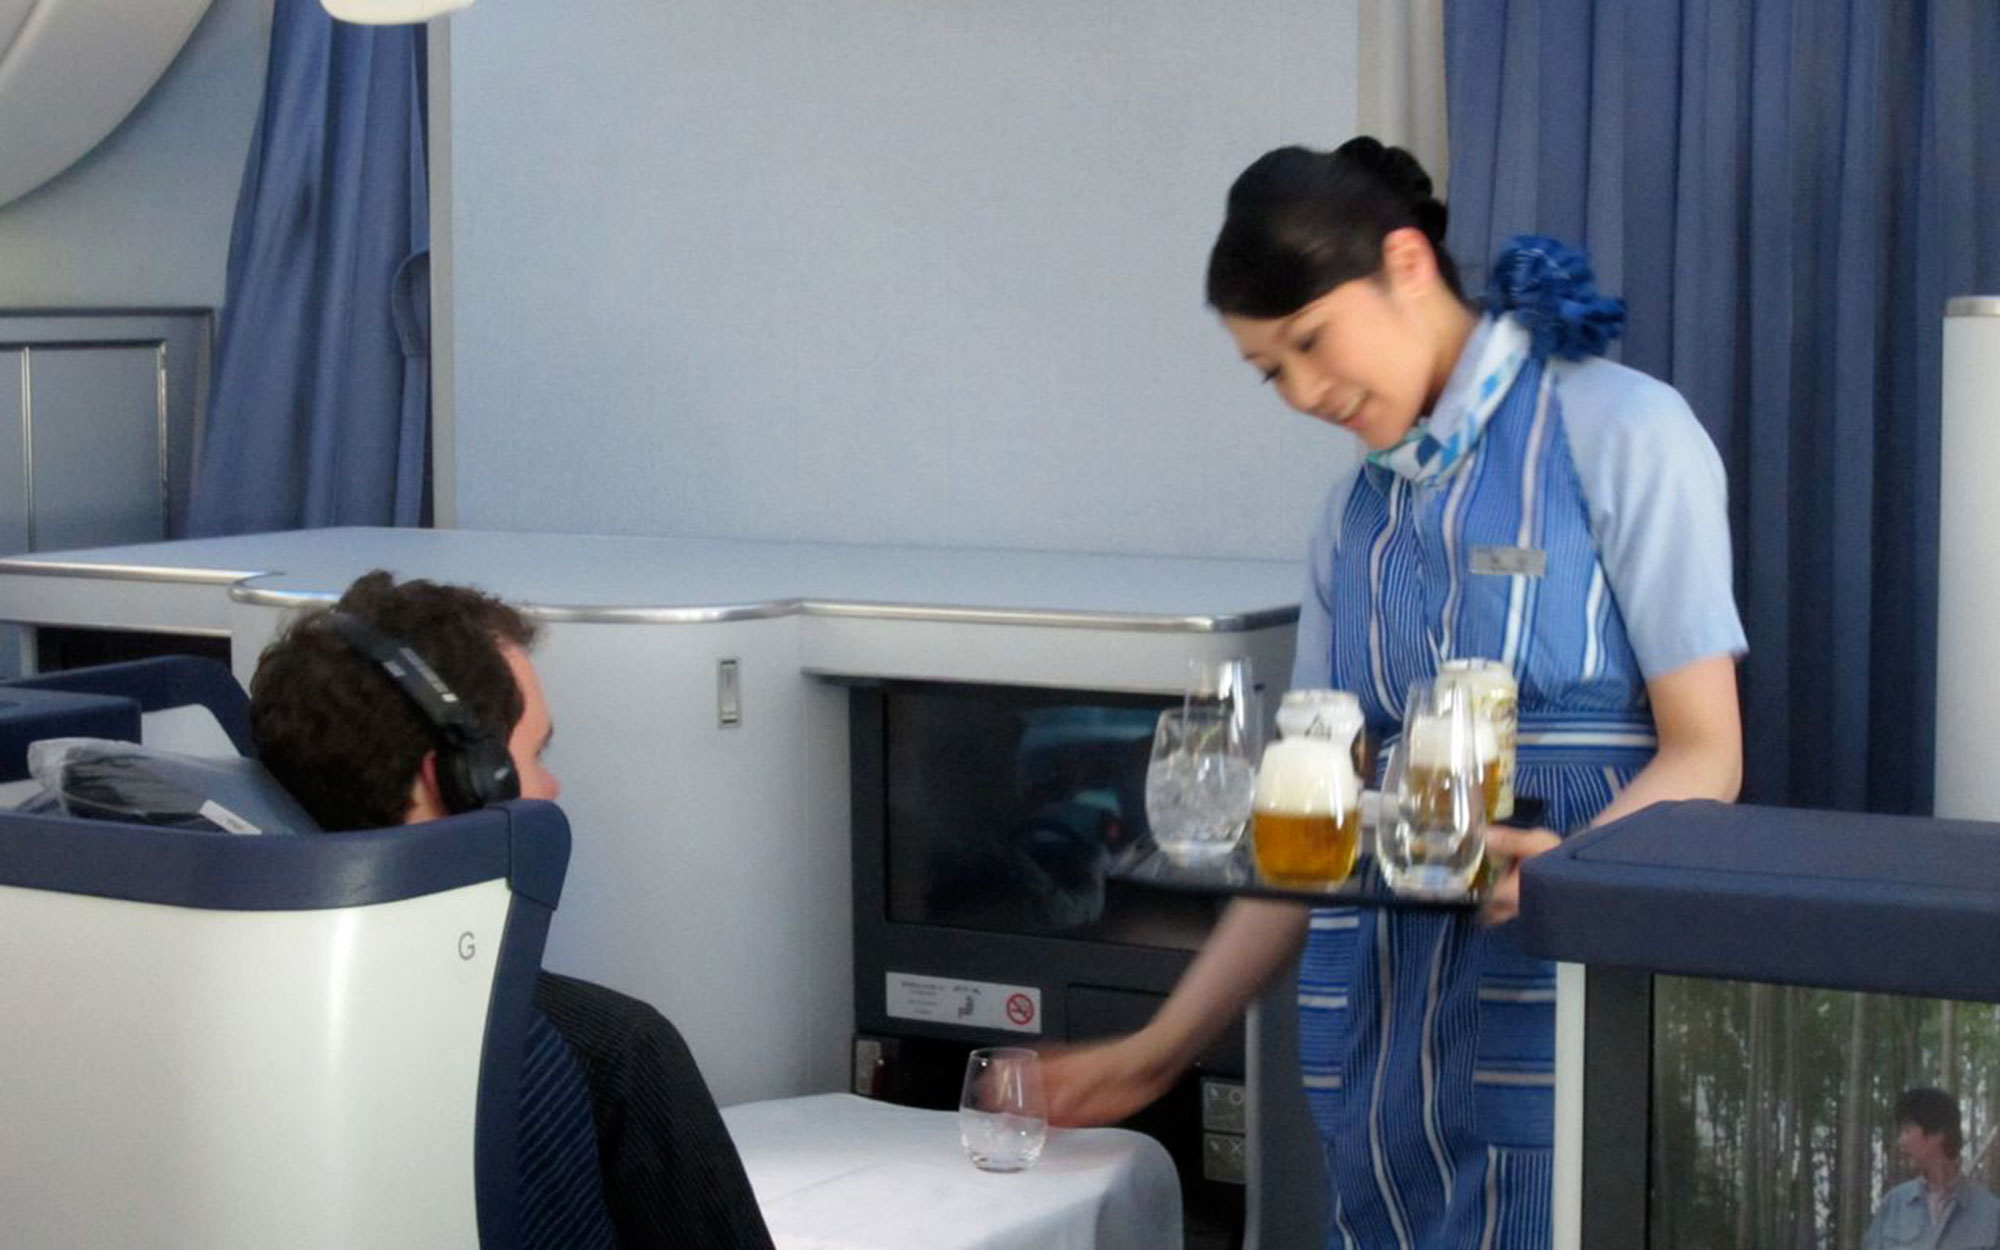 World's Best Airlines for Customer Service: All Nippon, International